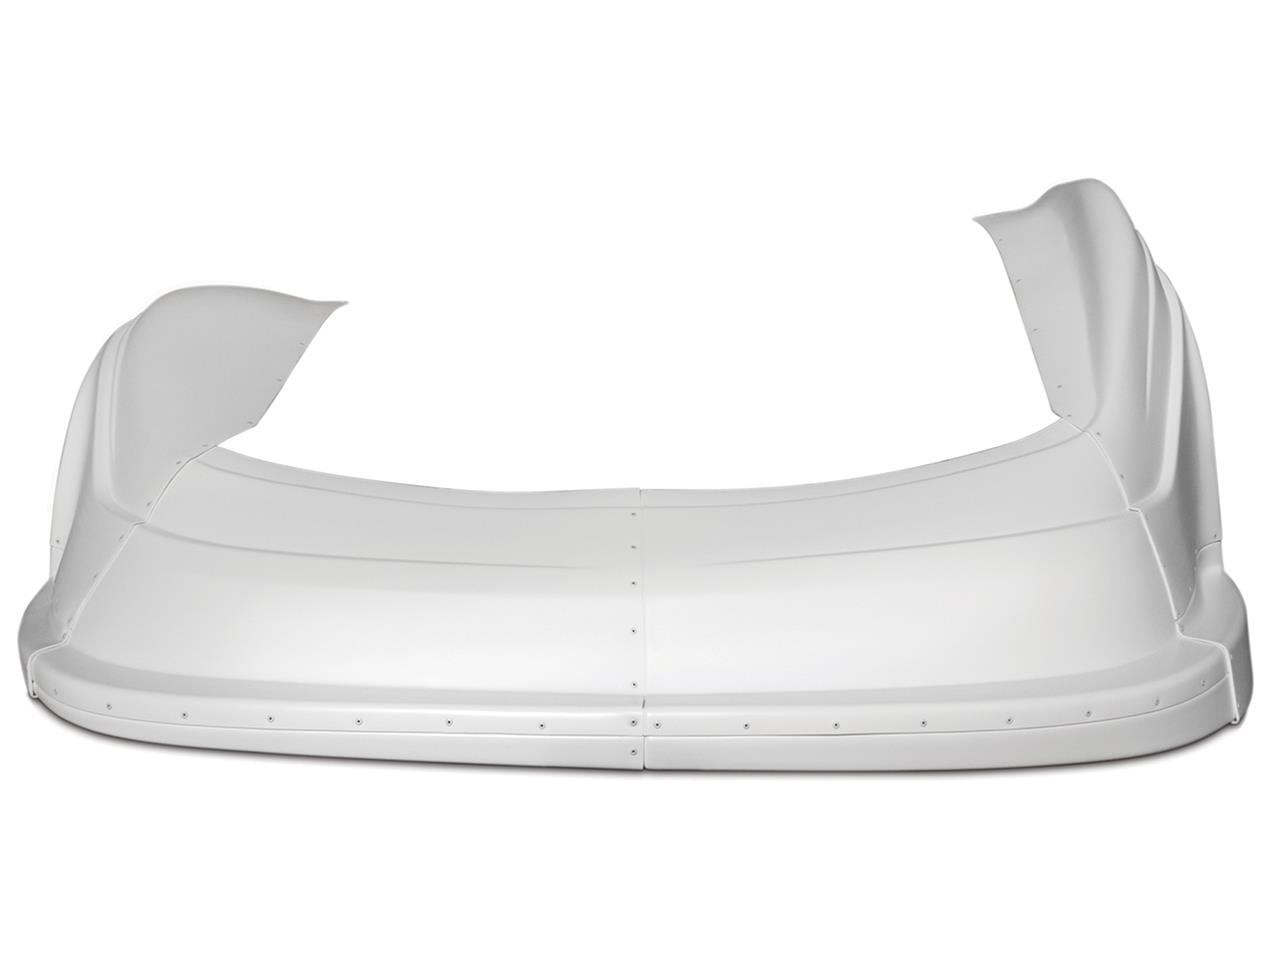 MD3 Evolution 2 Nose Kit - (White - No Decals)